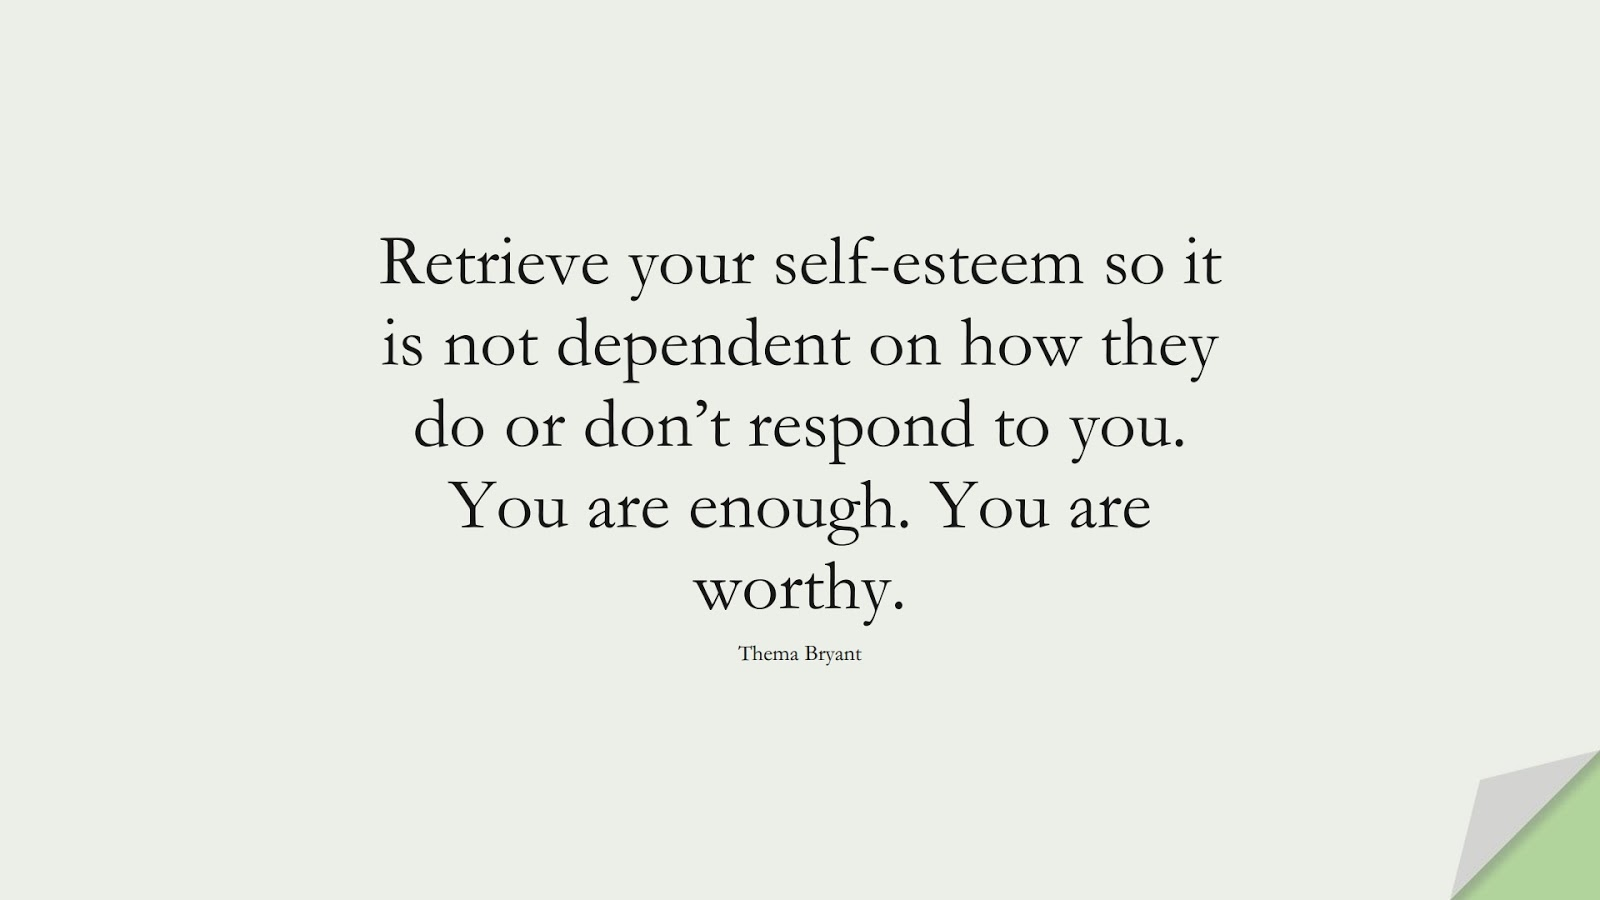 Retrieve your self-esteem so it is not dependent on how they do or don't respond to you. You are enough. You are worthy. (Thema Bryant);  #SelfEsteemQuotes